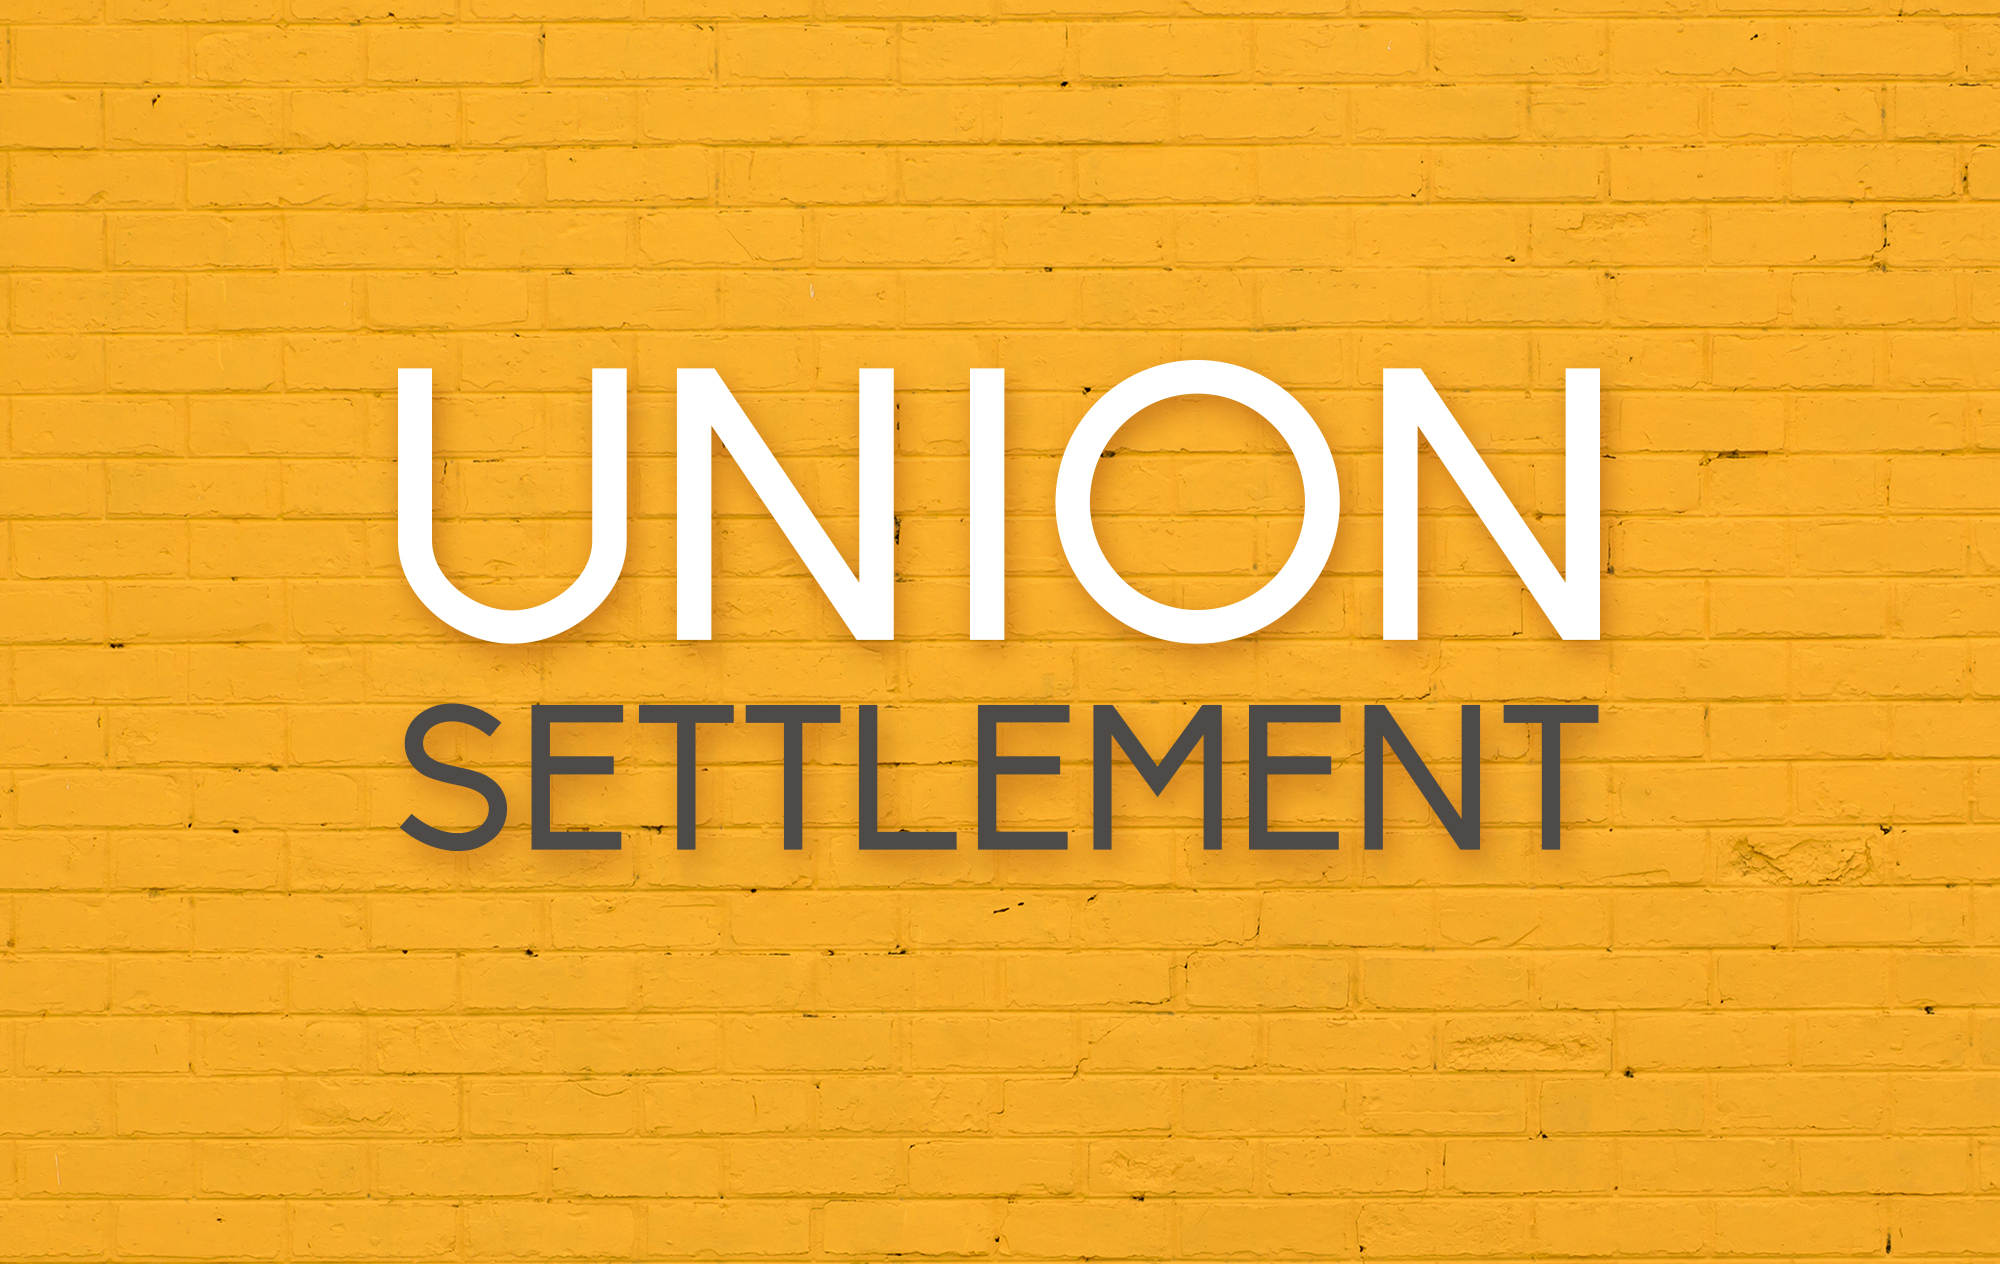 Union Settlement logo against brick background